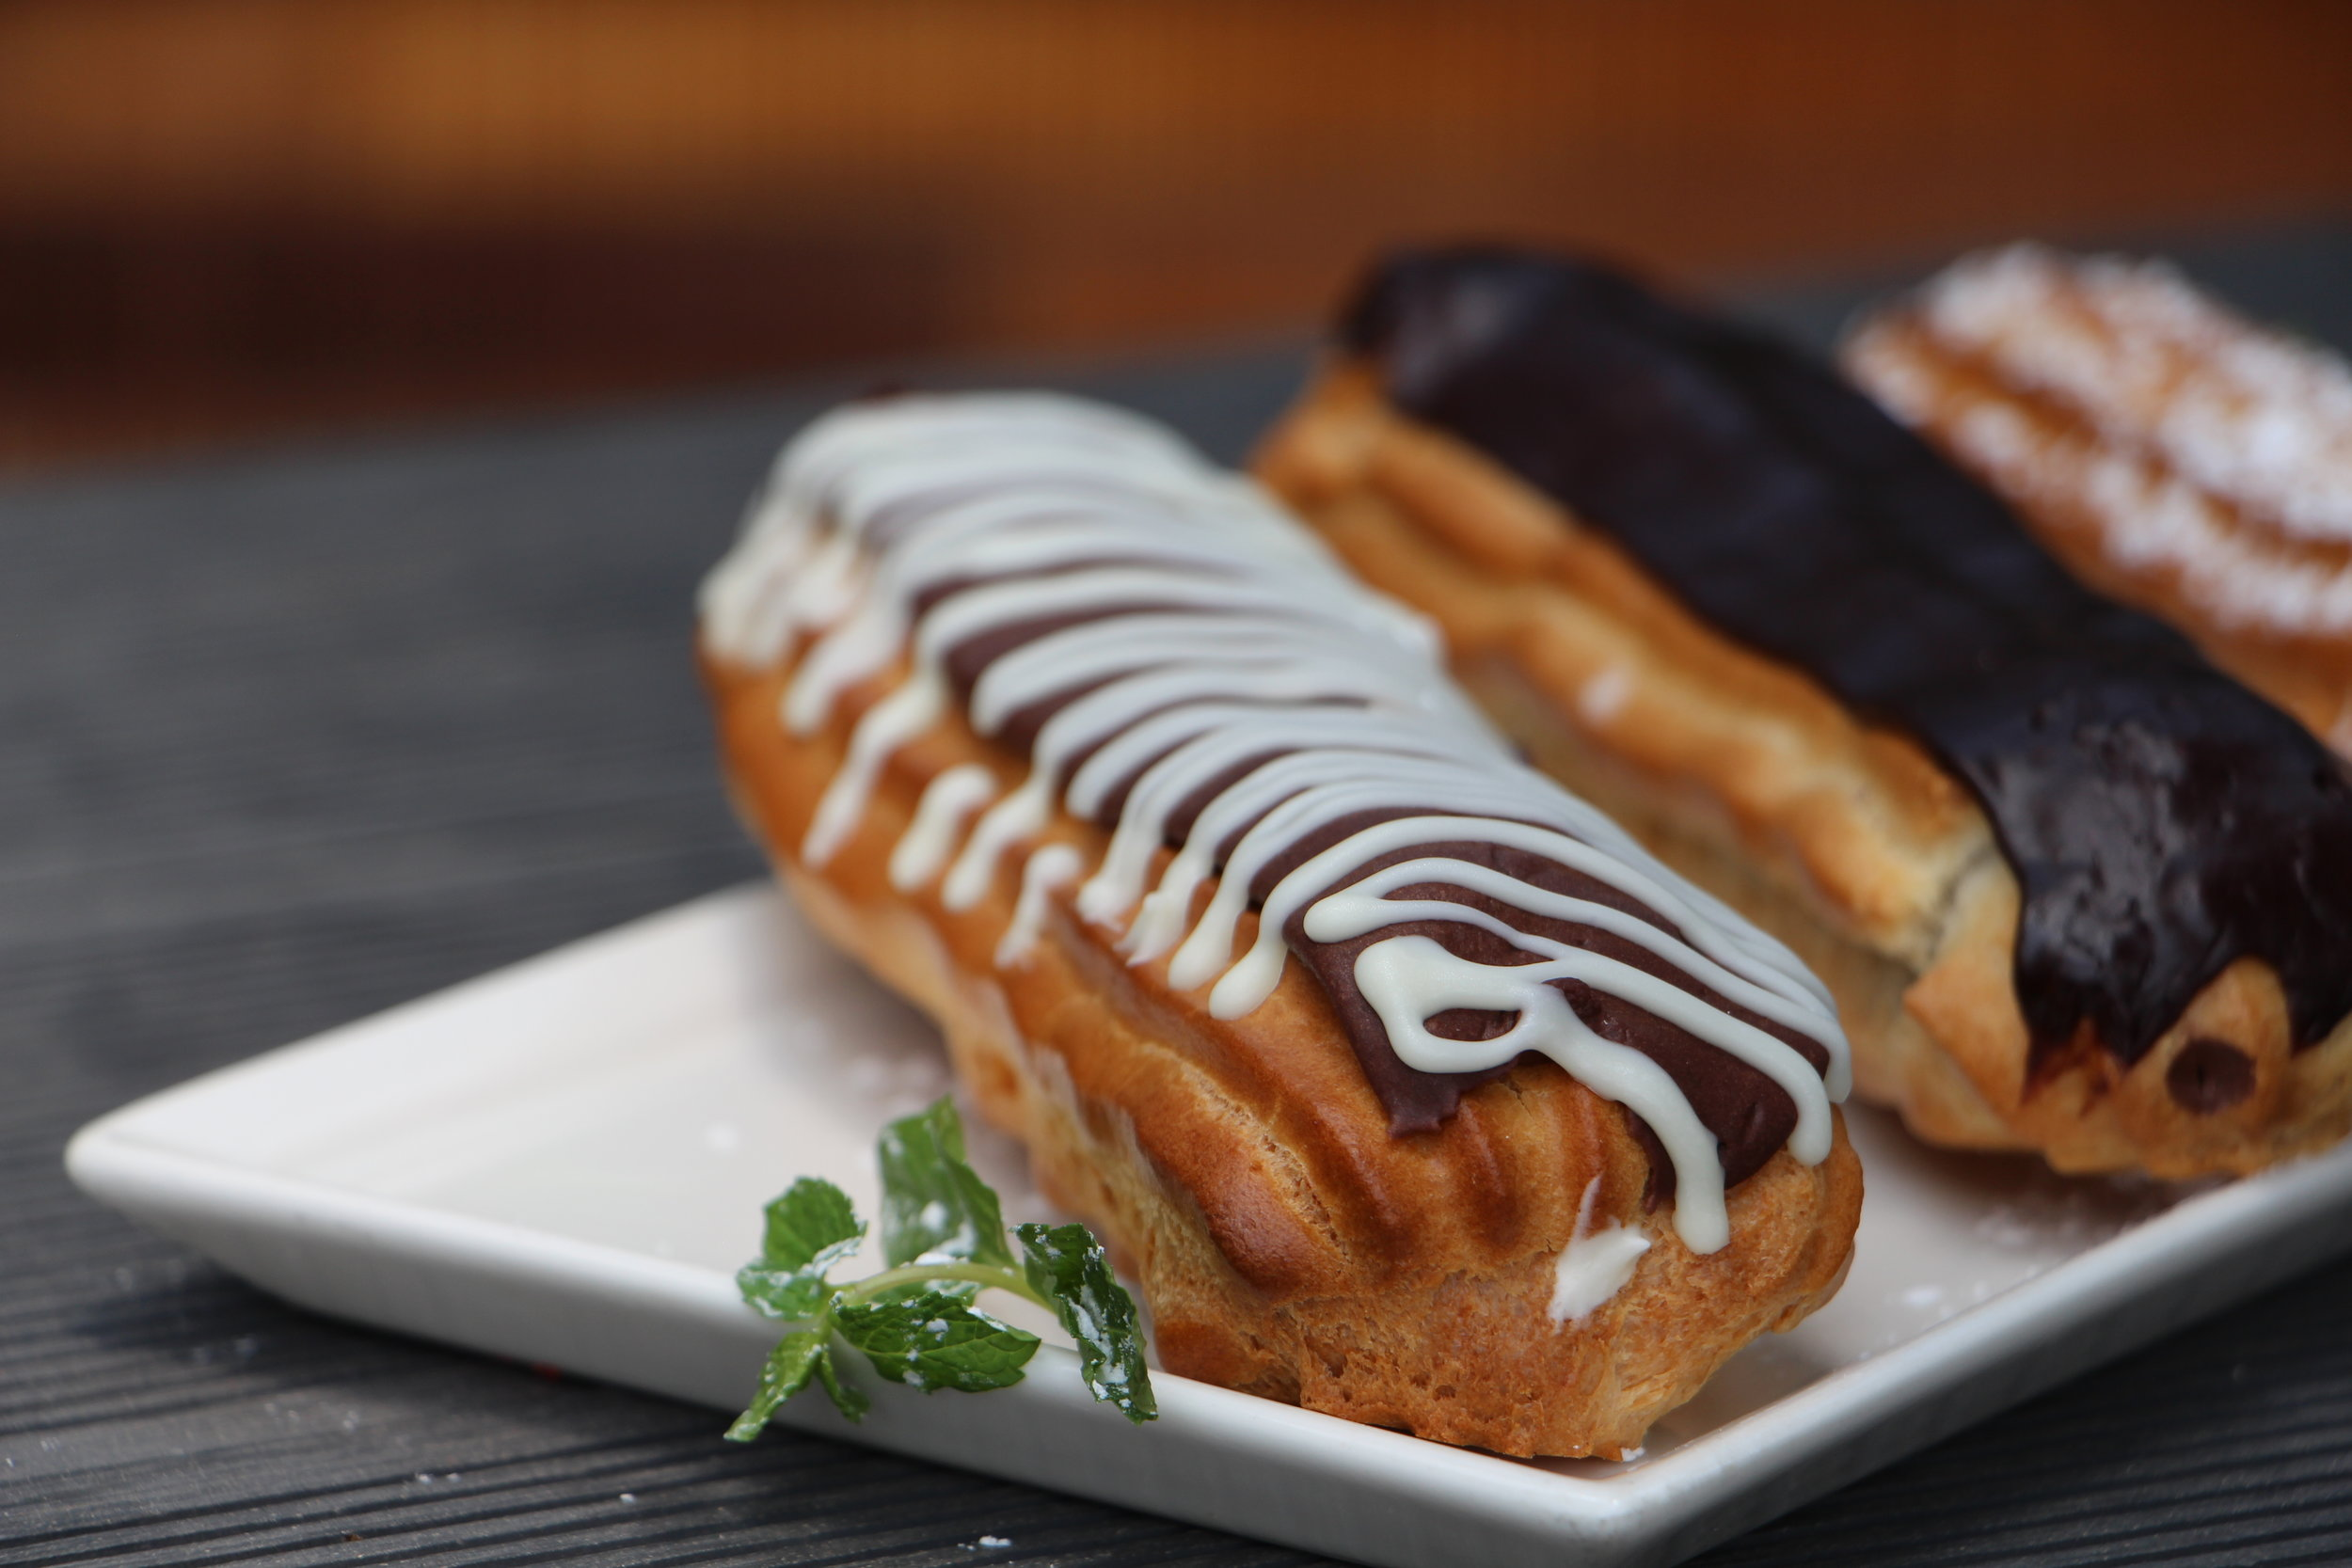 This French pastry is often a delight to eat. Chocolate or vanilla, each one filled with delicious whipped cream is heavenly.